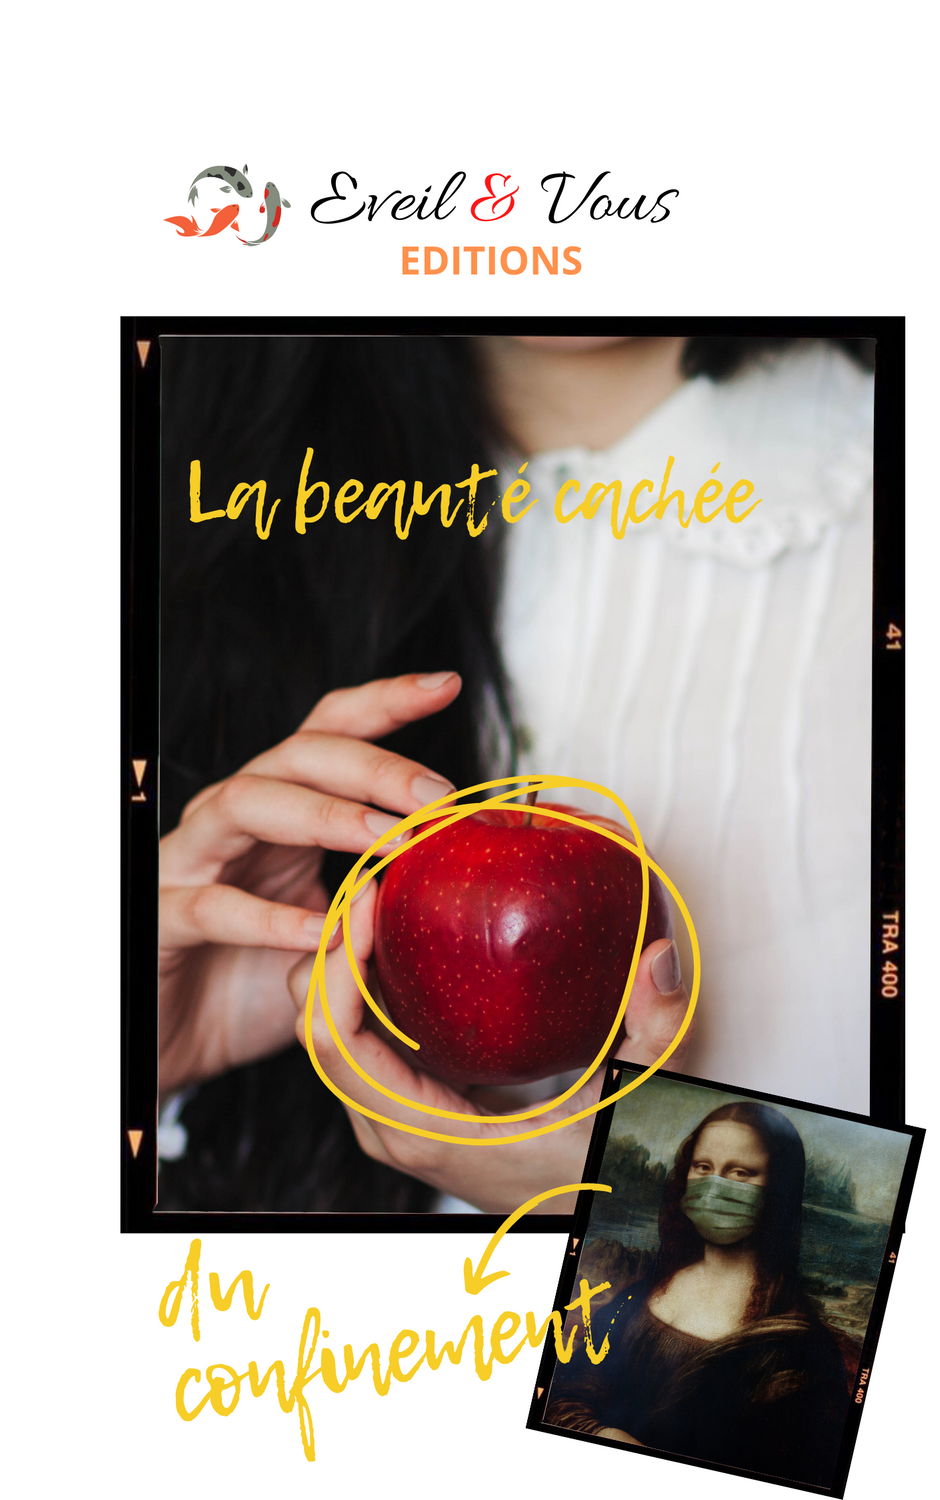 beaute-cachee-cover-1408-test-1